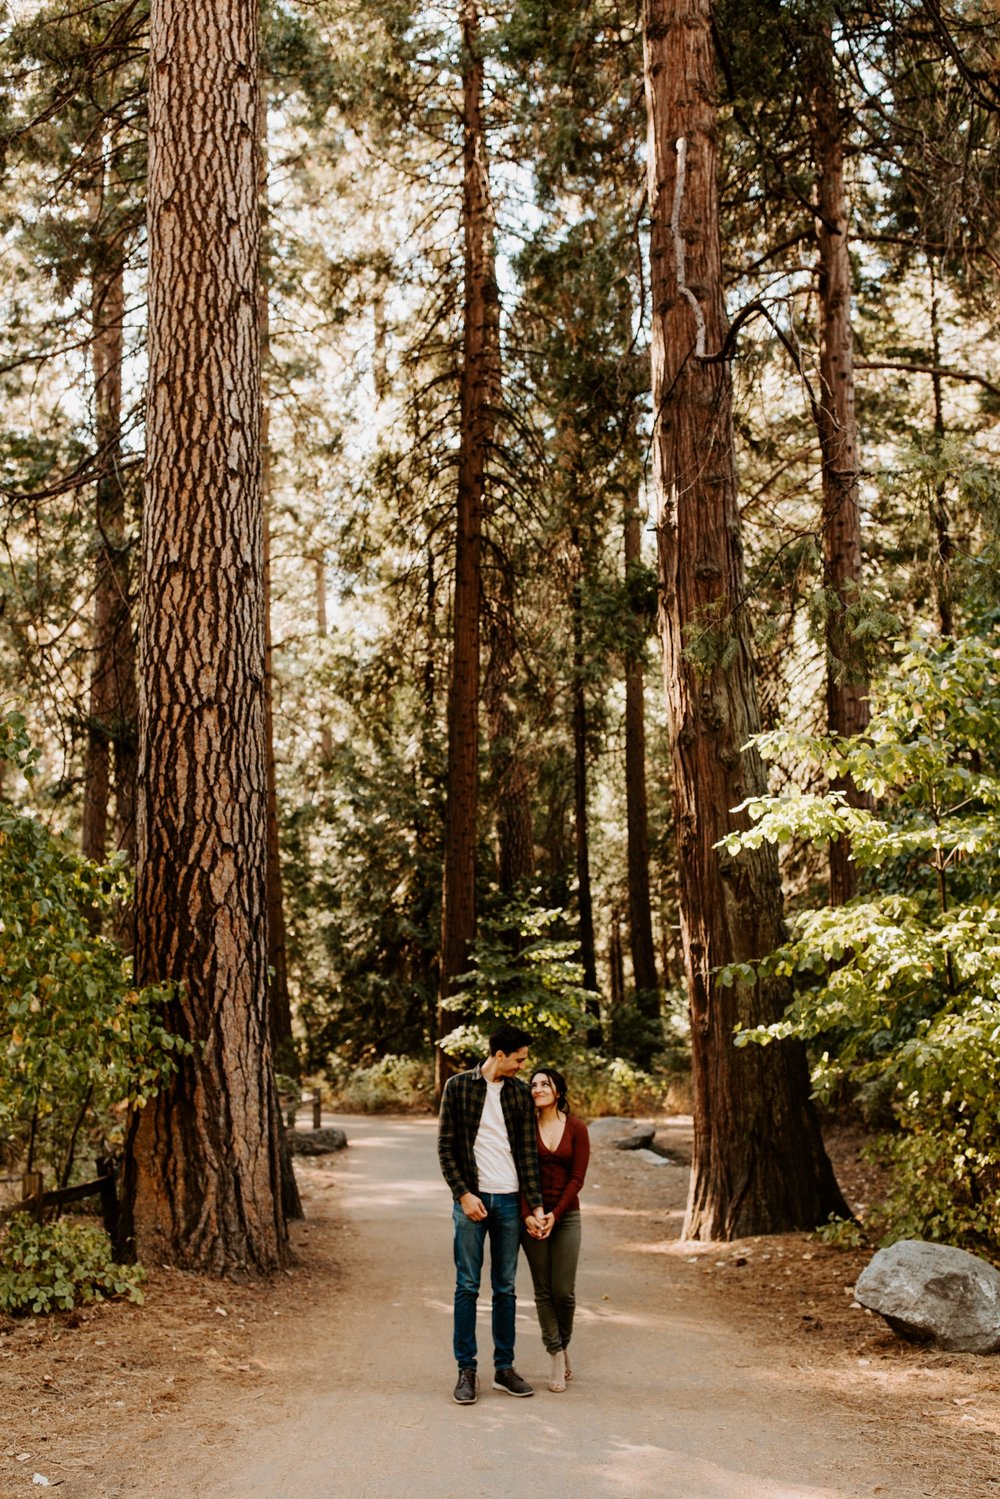 Couple standing in pine tree grove in Yosemite